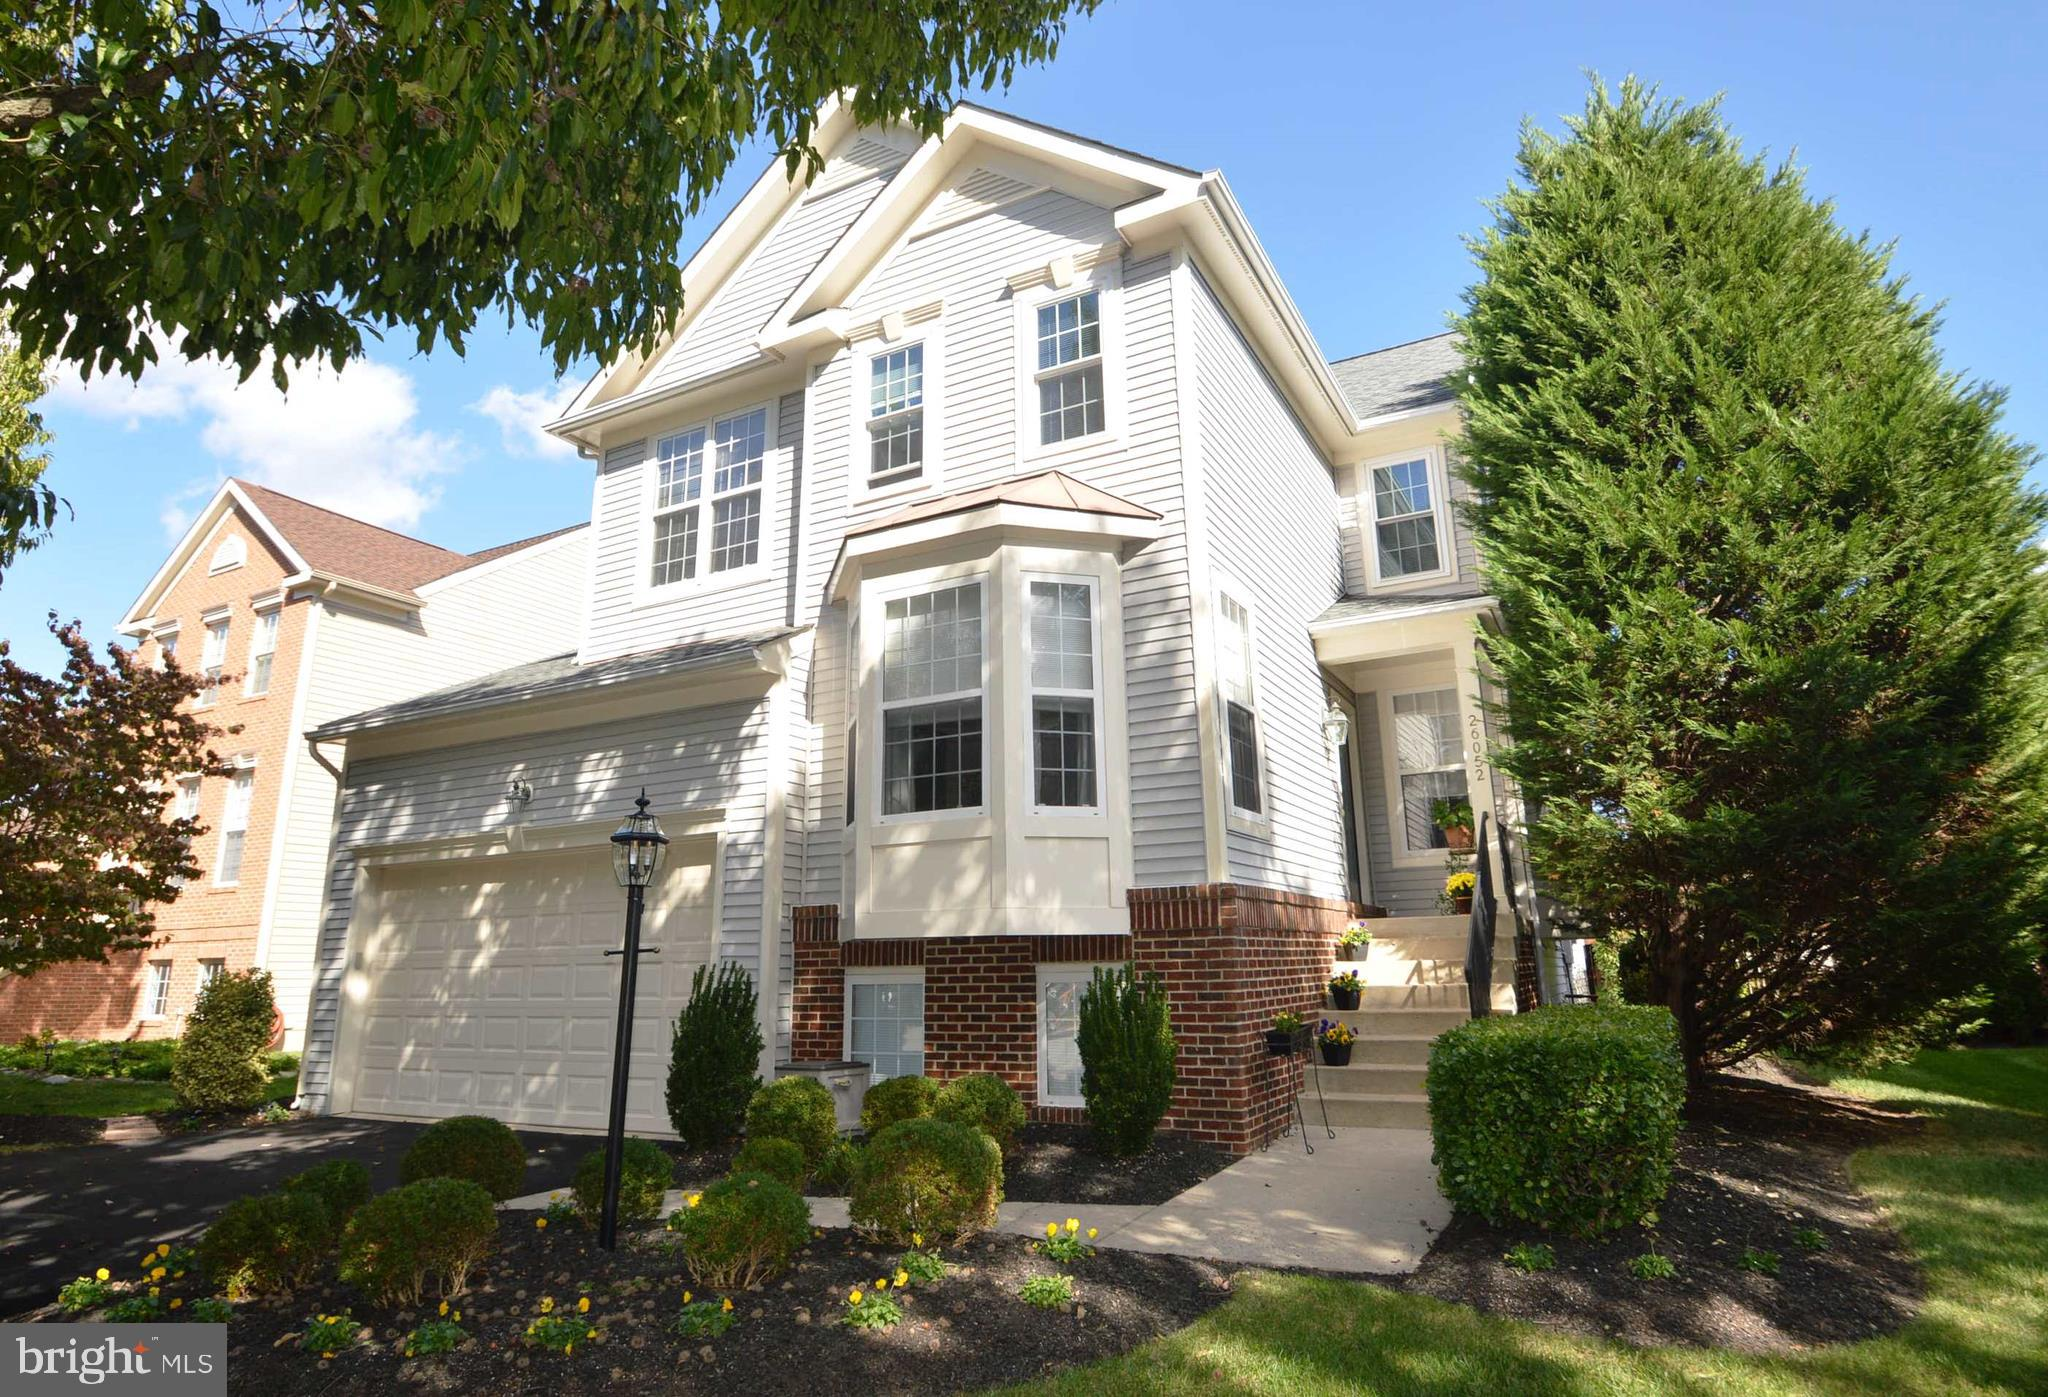 LOCATED NEAR ELEMENTARY SCHOOL, POOL & TENNIS*MODEL HOME TURN KEY CONDITION*SHOWS IMMACULATELY FROM